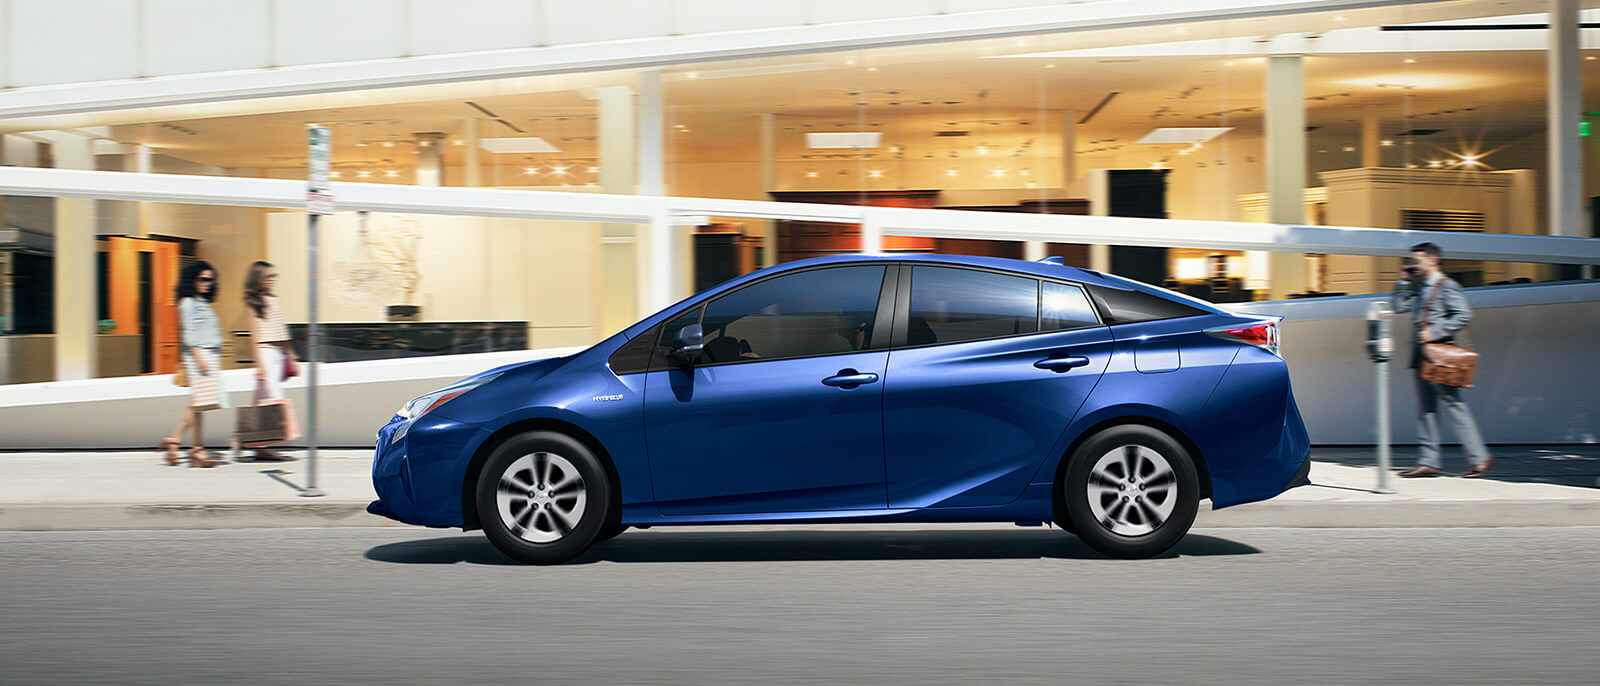 Findlay Toyota Henderson >> 2017 Toyota Prius at Findlay Toyota